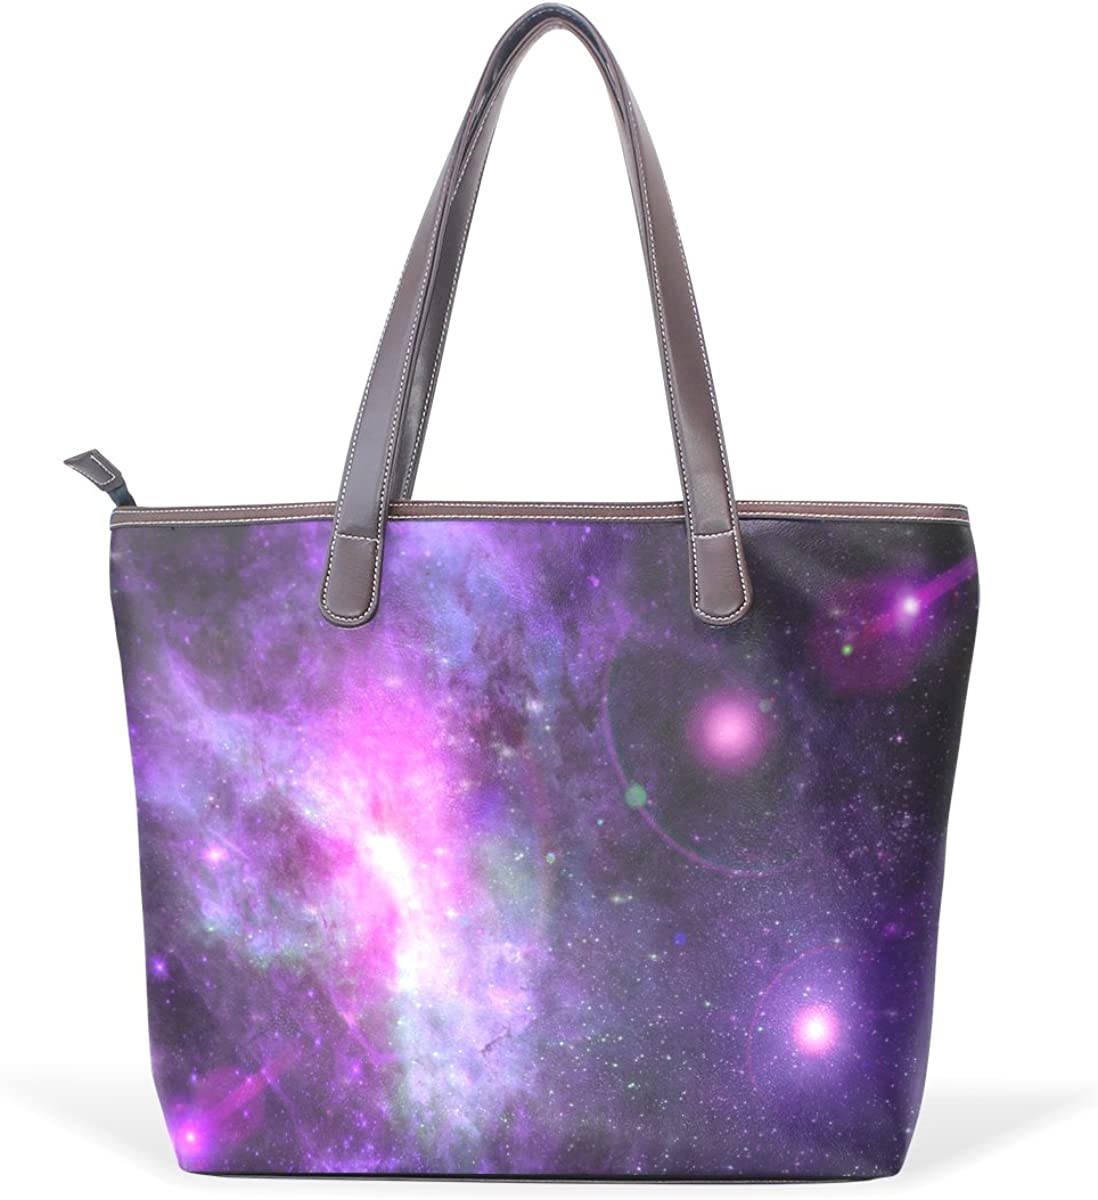 Sunlome Galaxy Starry Space Universe Pattern Handbags For Women Girls PU Leather Shoulder Tote Bag